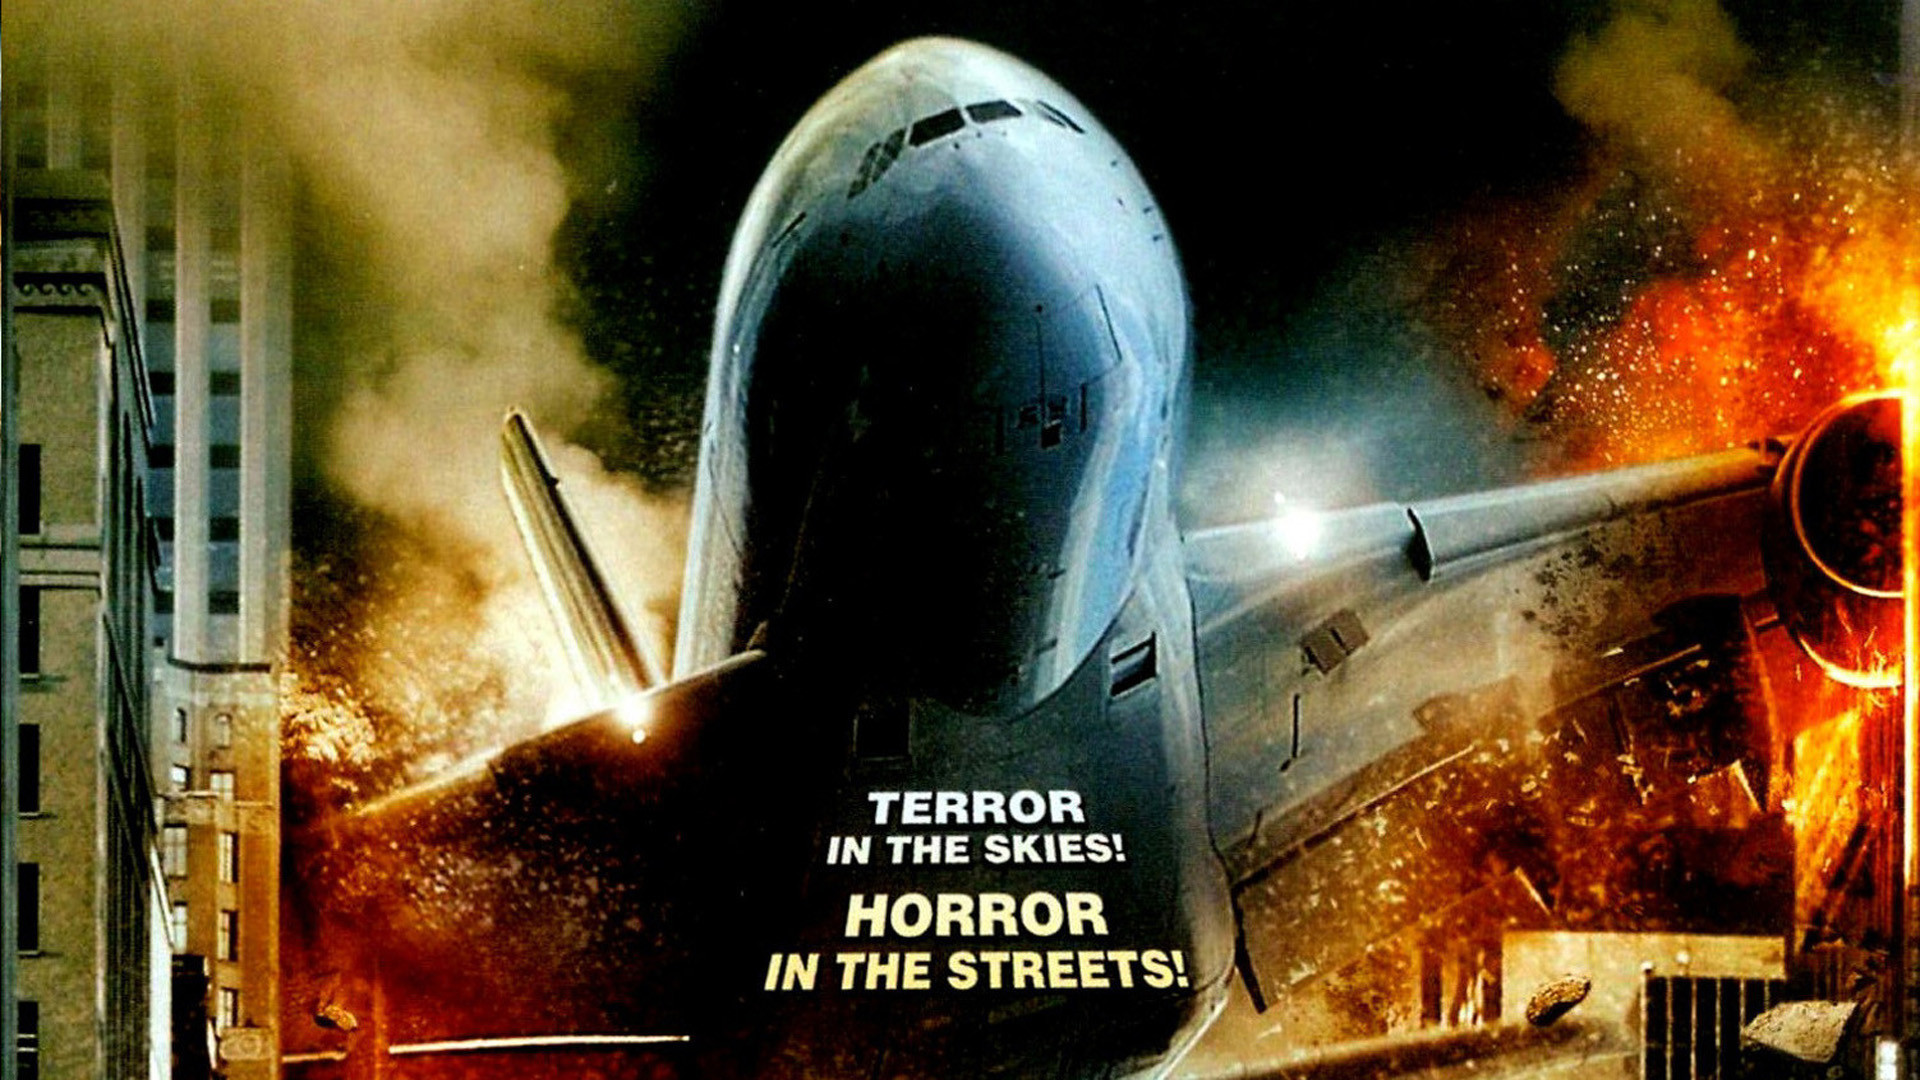 Airline disaster - horror in the skies, terror in the streets